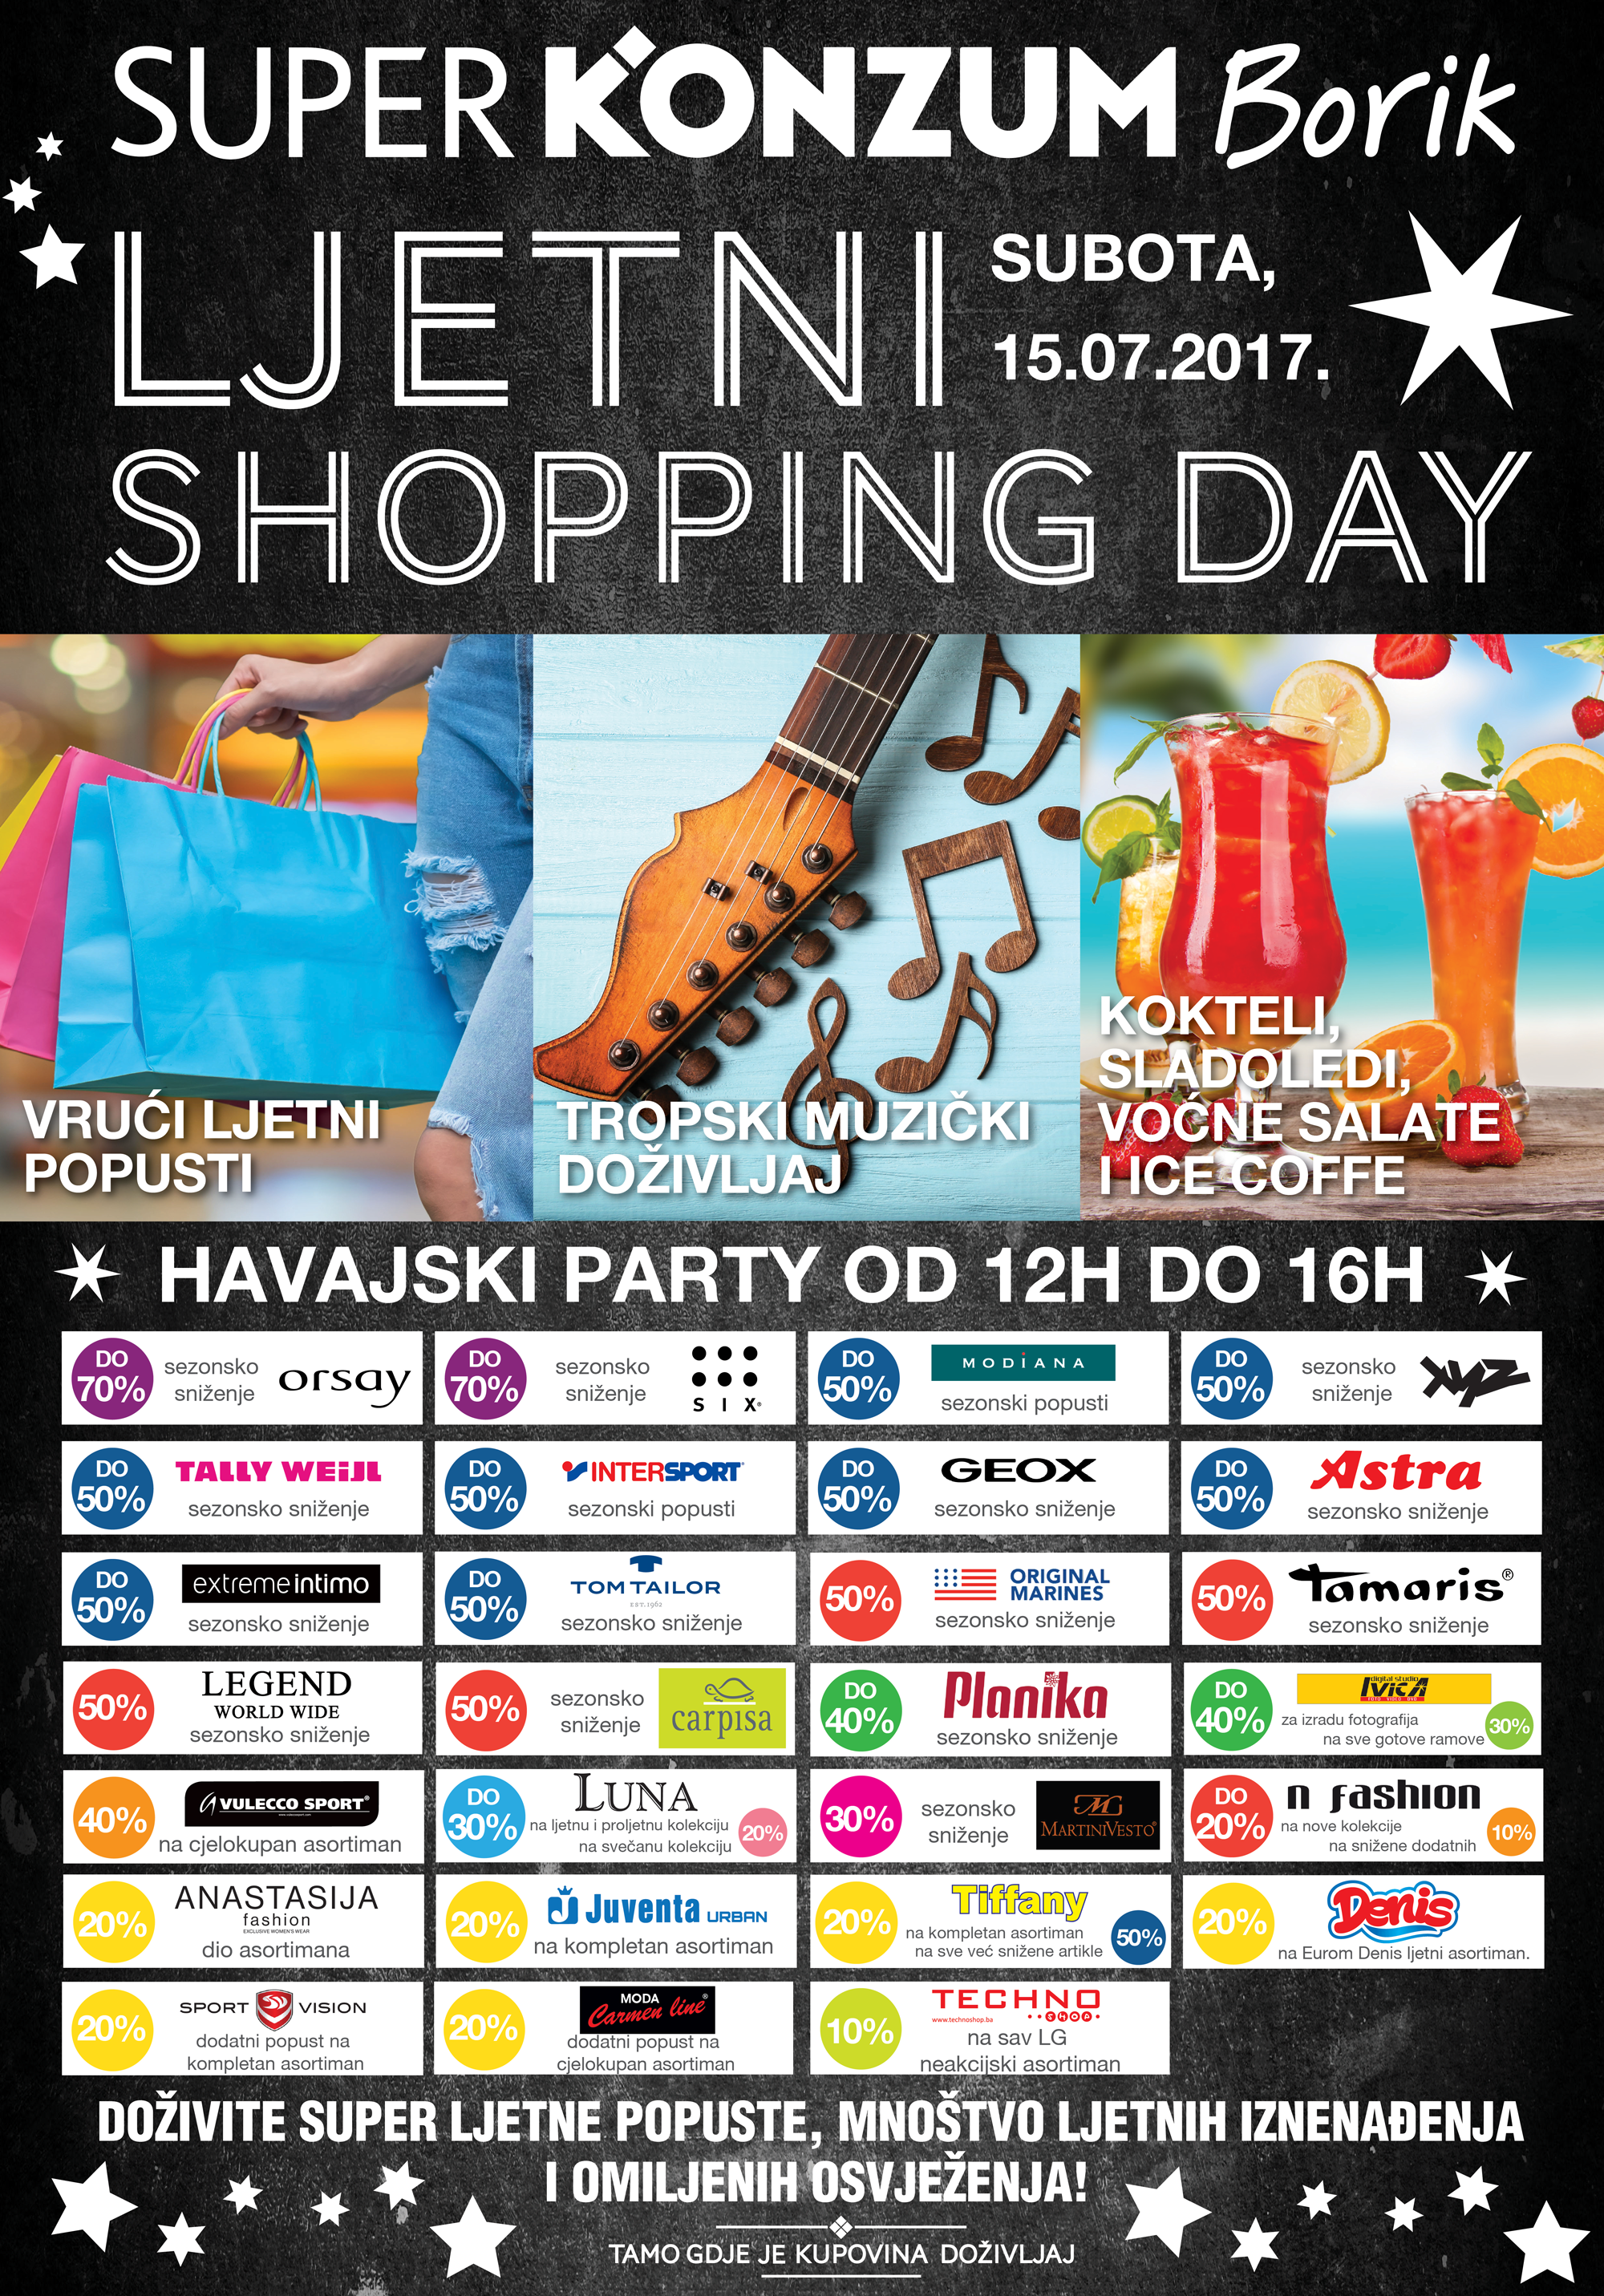 Ljetni-Shopping-Day-plakat-SK-Borik-web